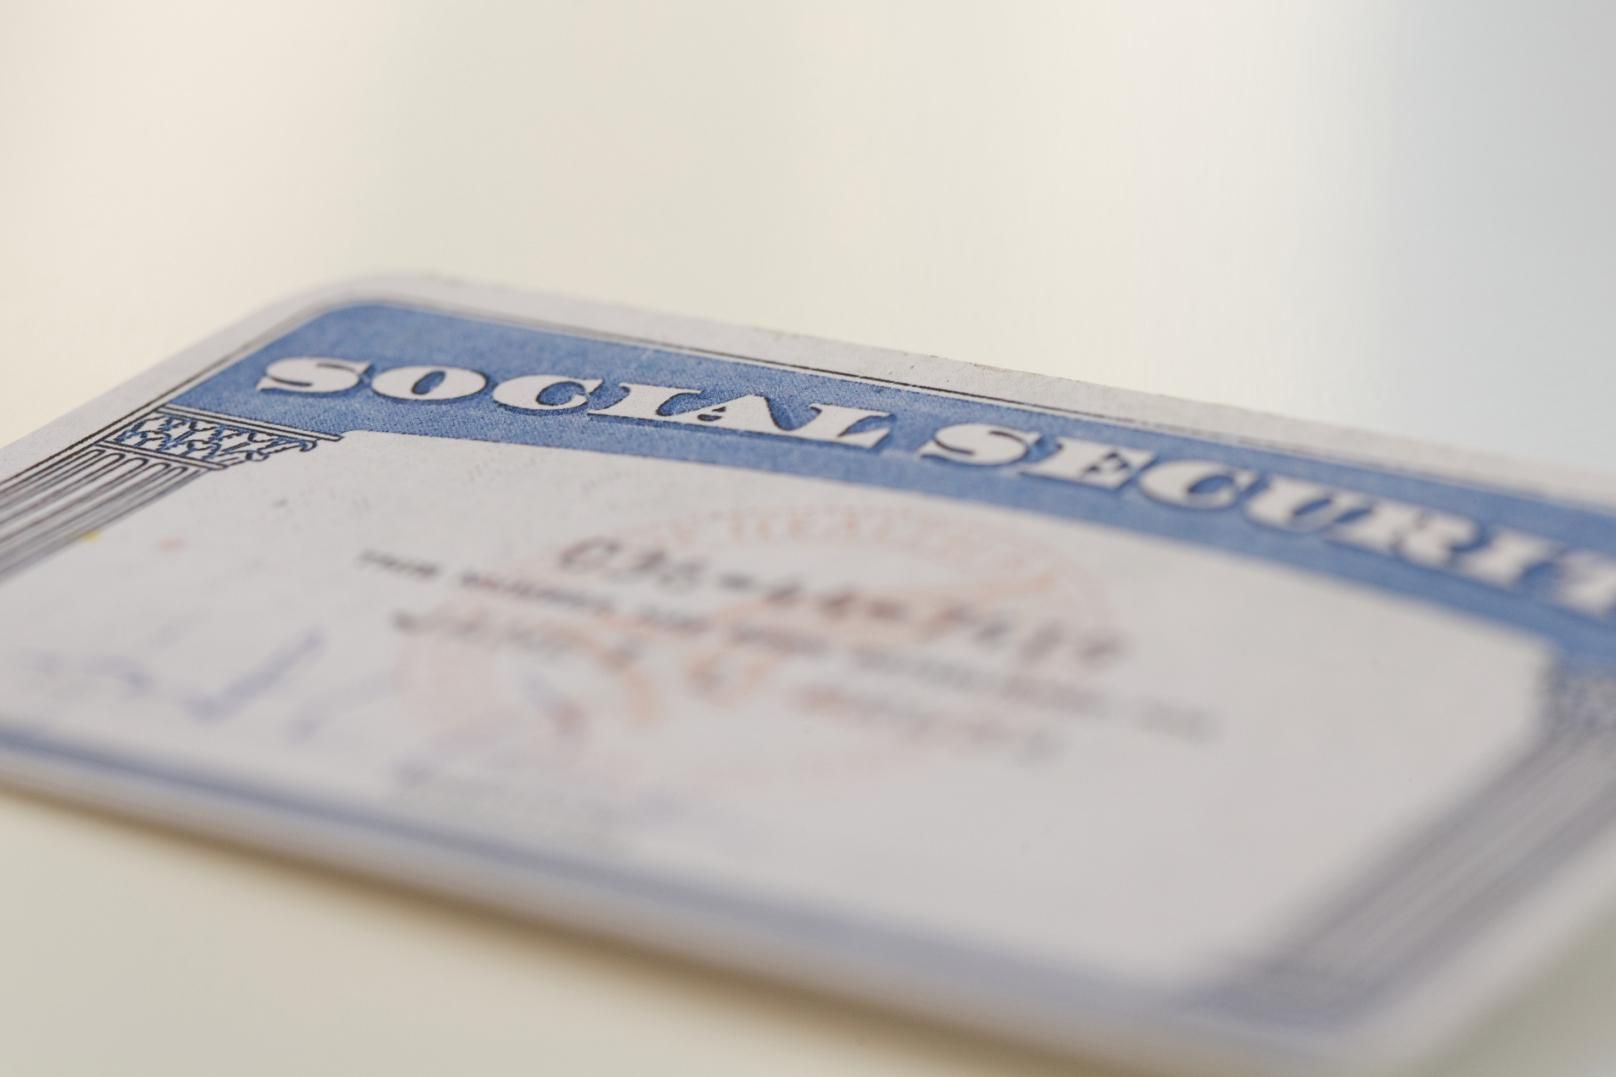 Get Social Security Card